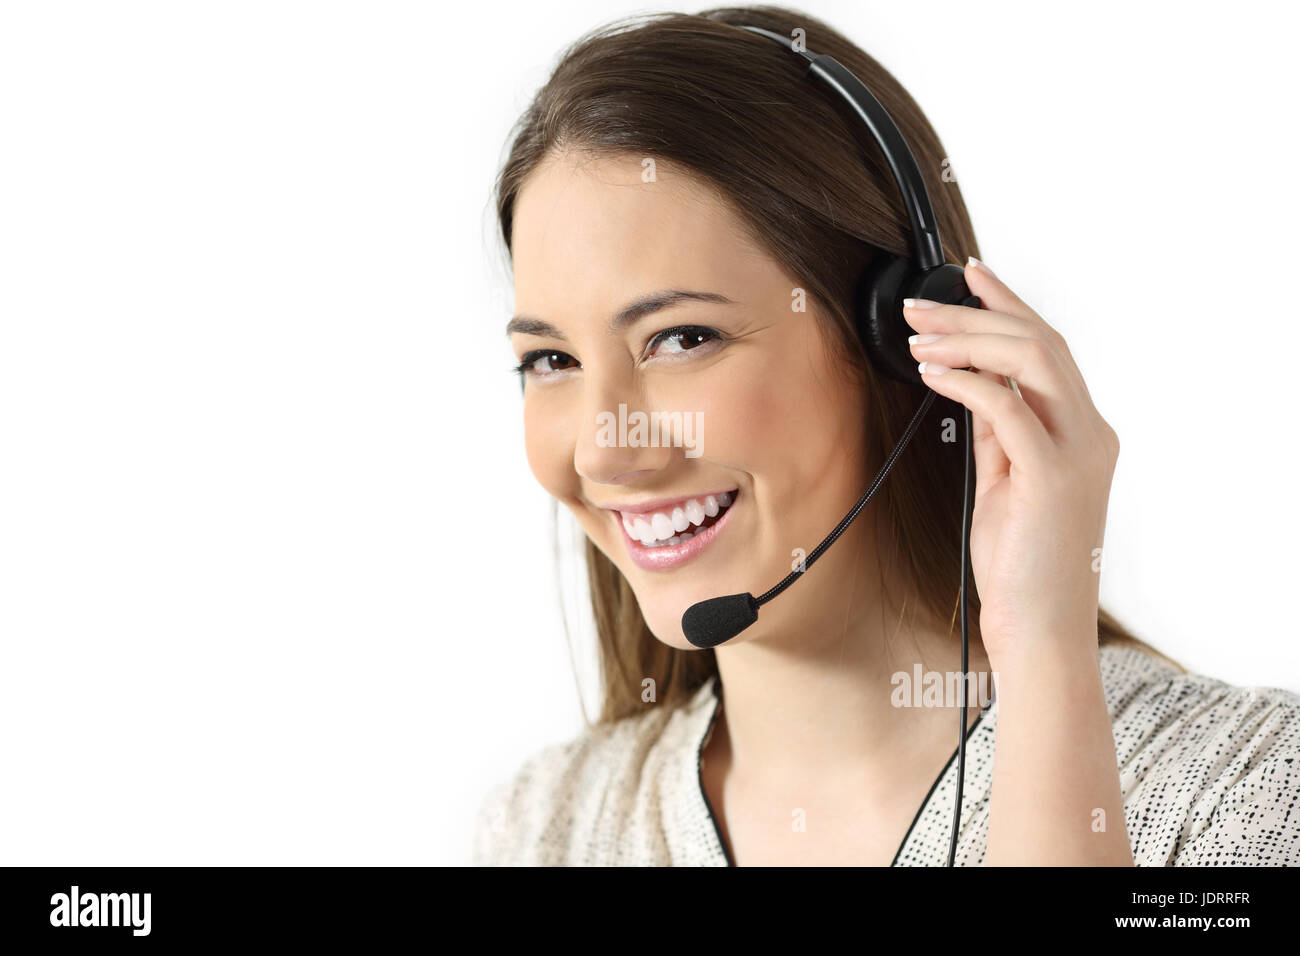 Portrait of a telemarketing operator looking at you isolated on a white background Stock Photo